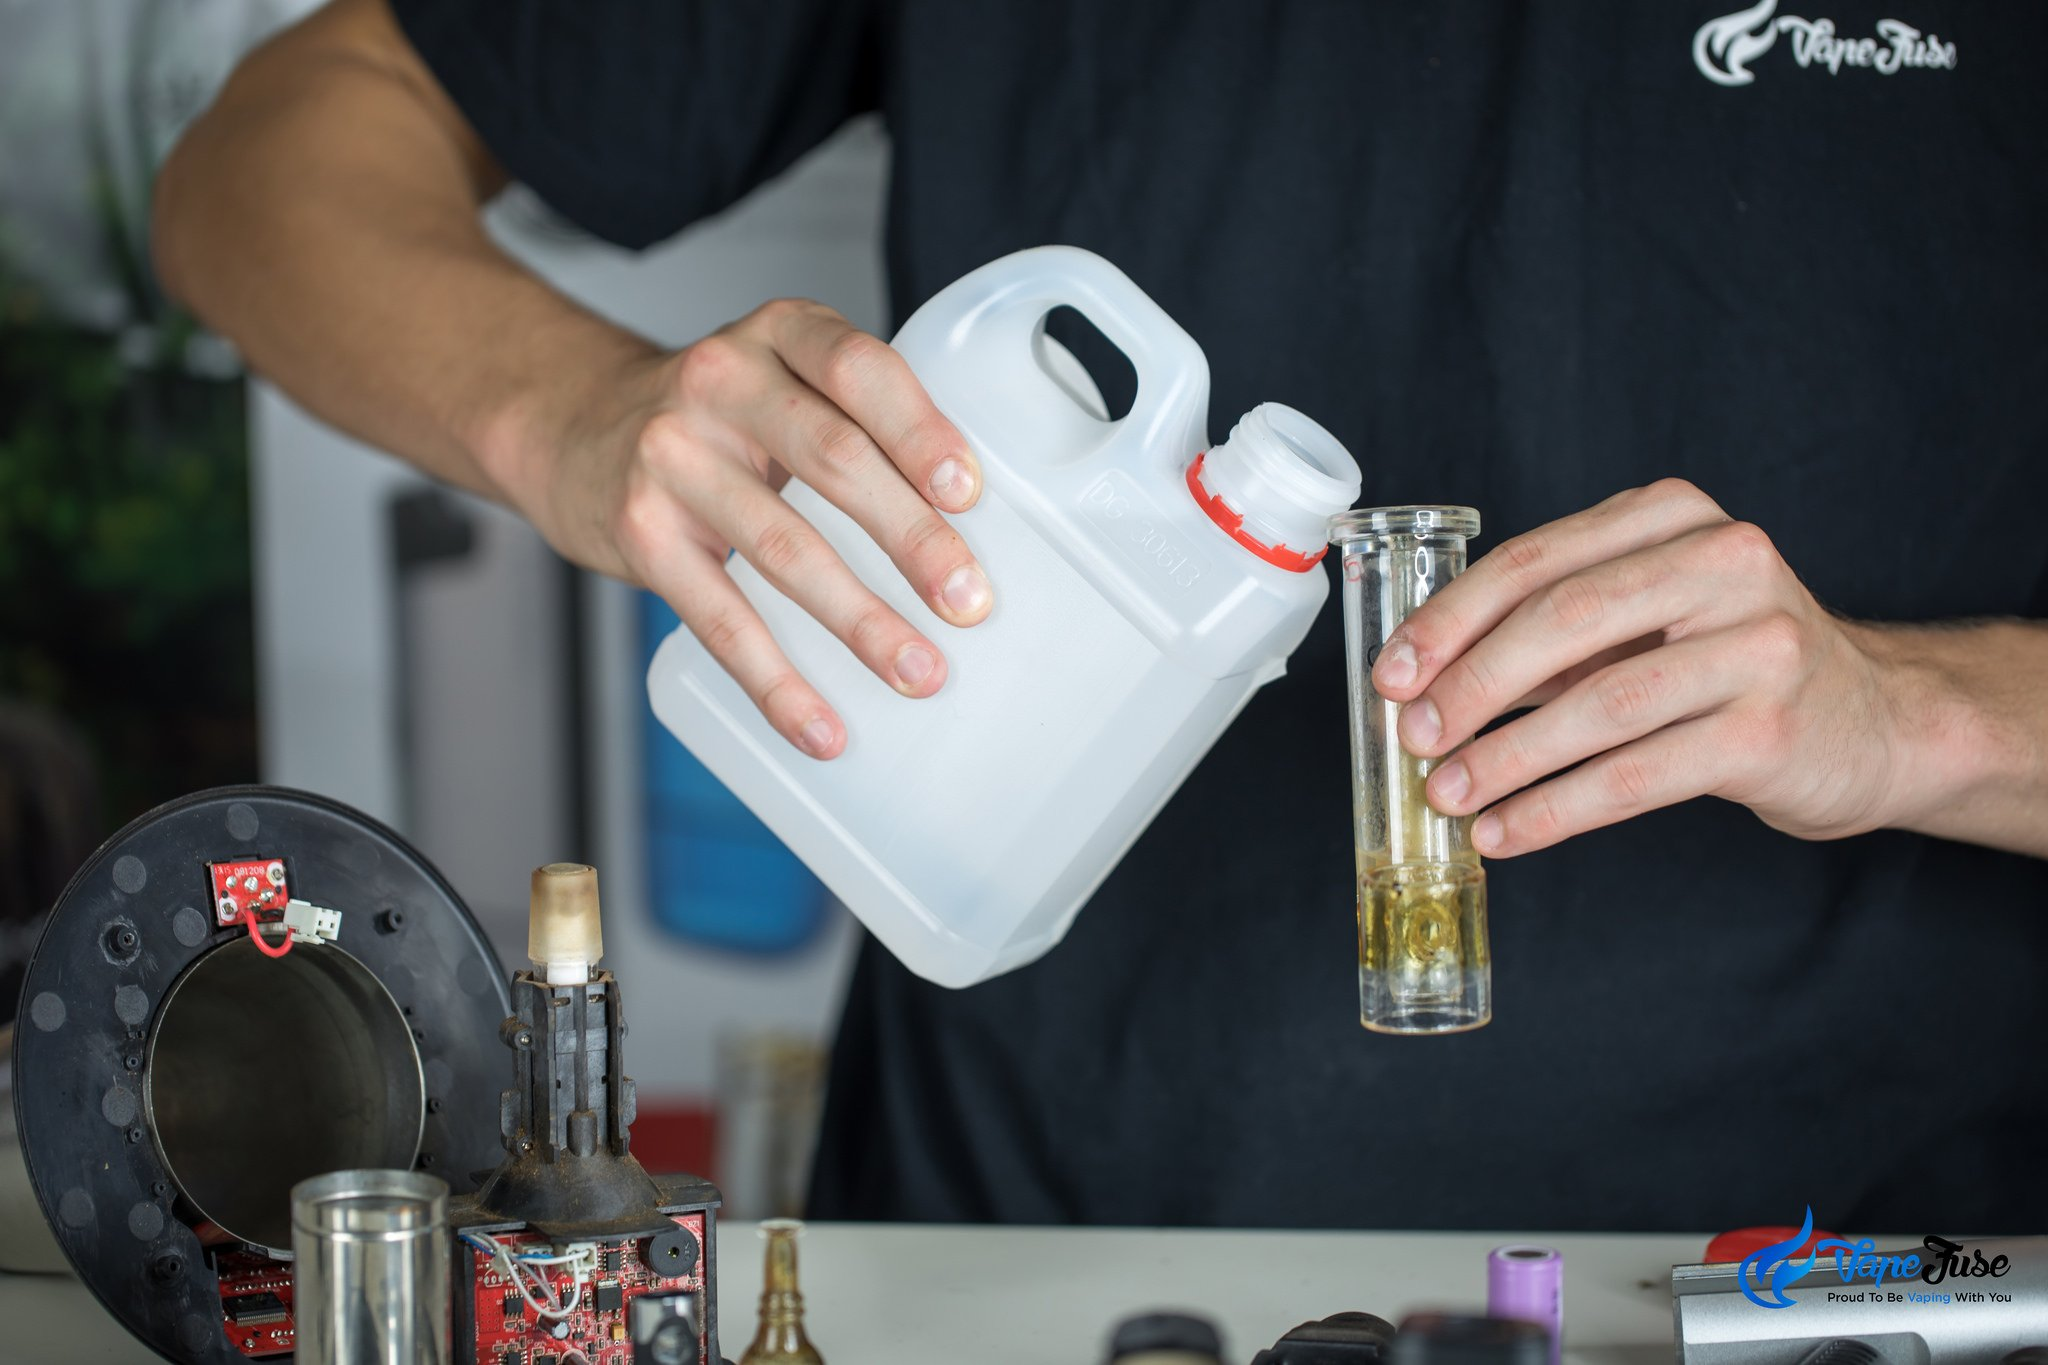 Cleaning and maintaining herbal vaporizers